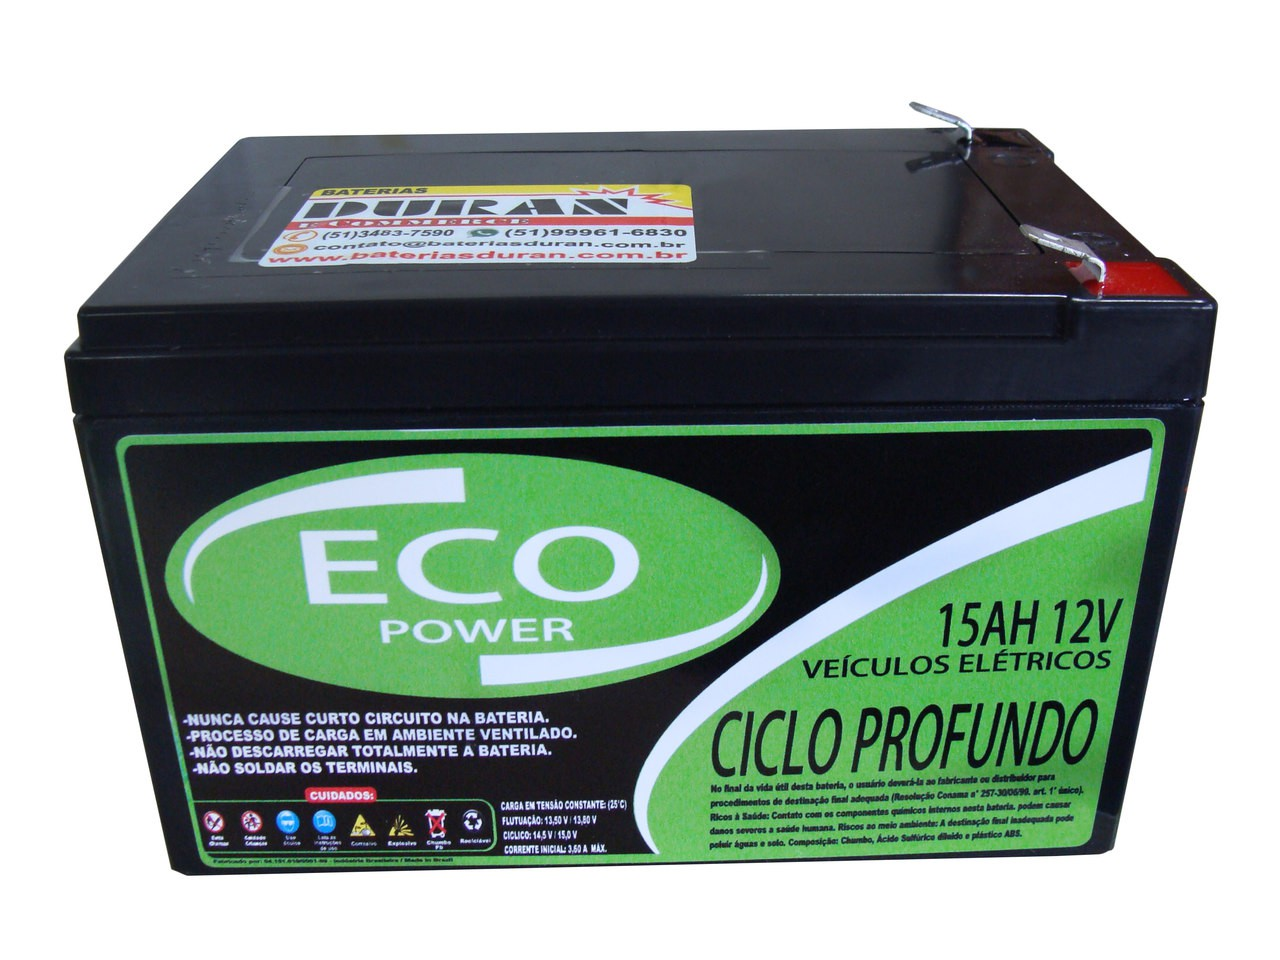 Kit 2 Baterias 15ah 12v Eco Power Ciclo Profundo Vrla